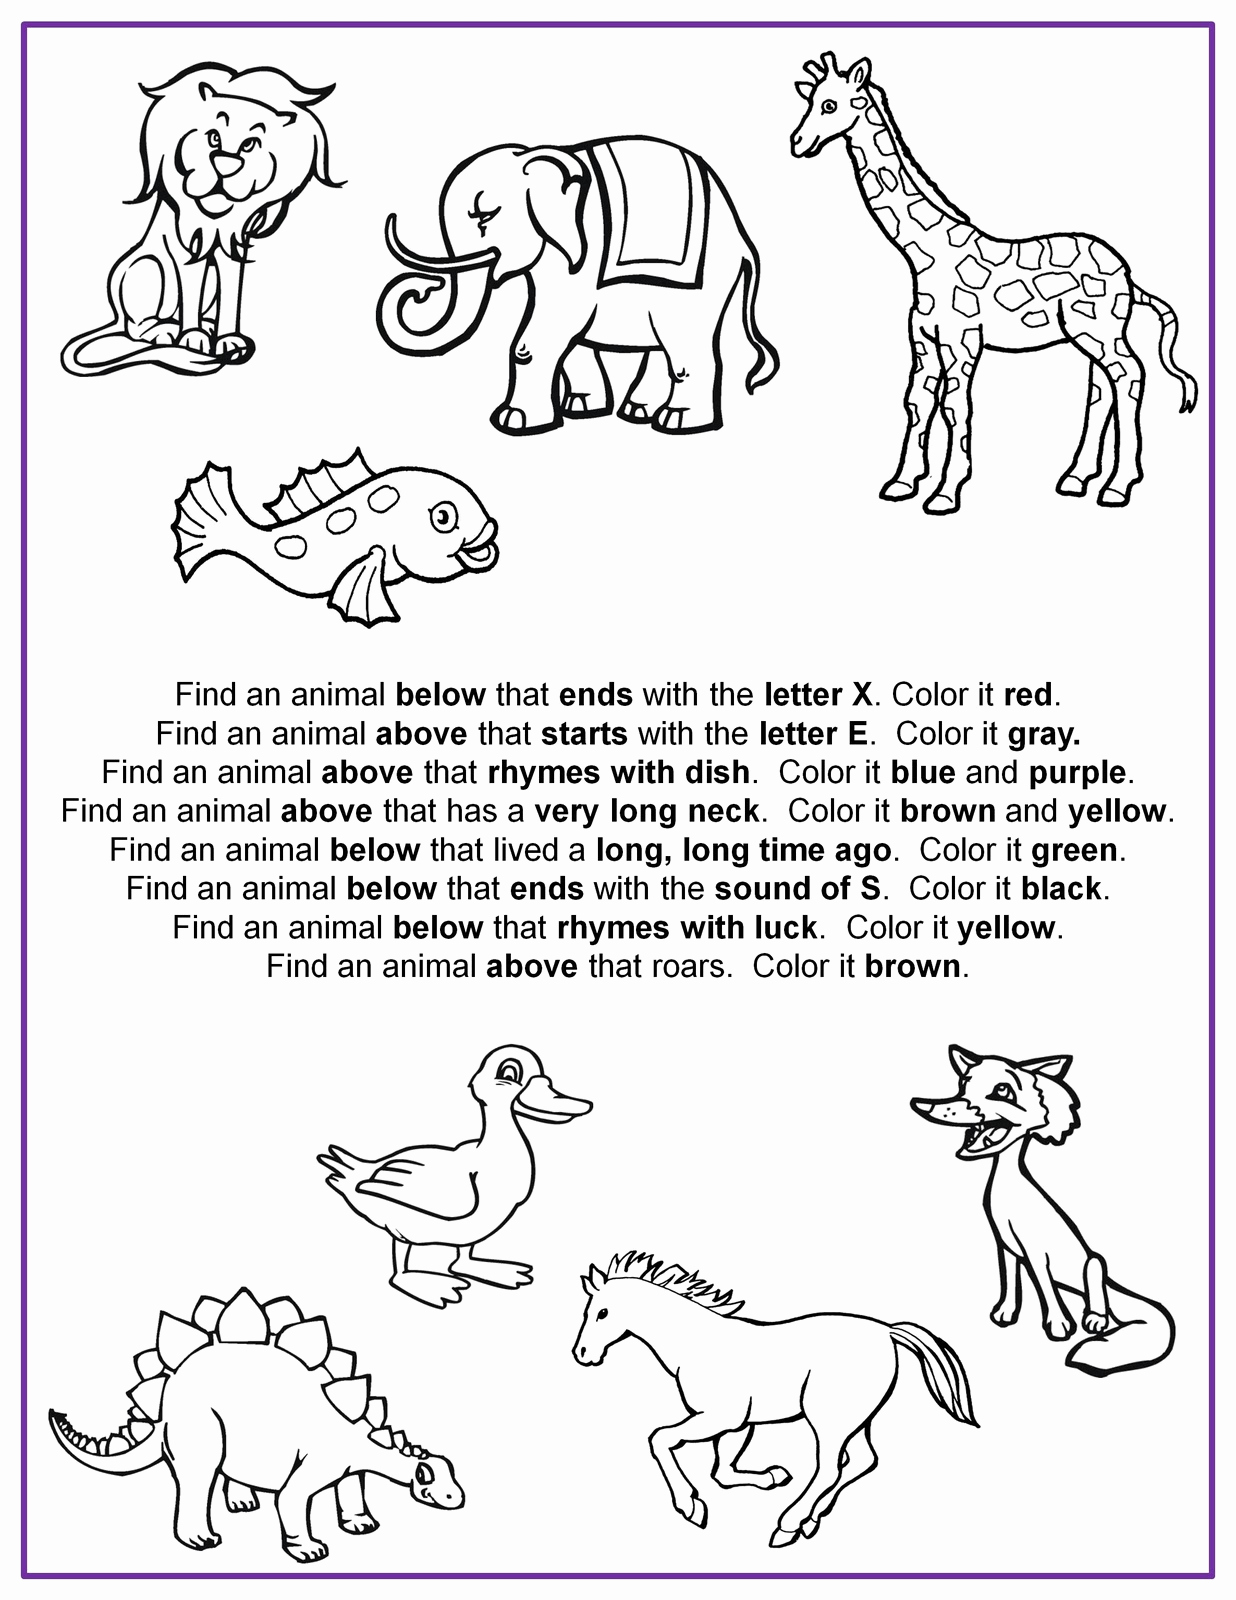 Following Directions Coloring Worksheet Lovely Direction Following Worksheets to Print